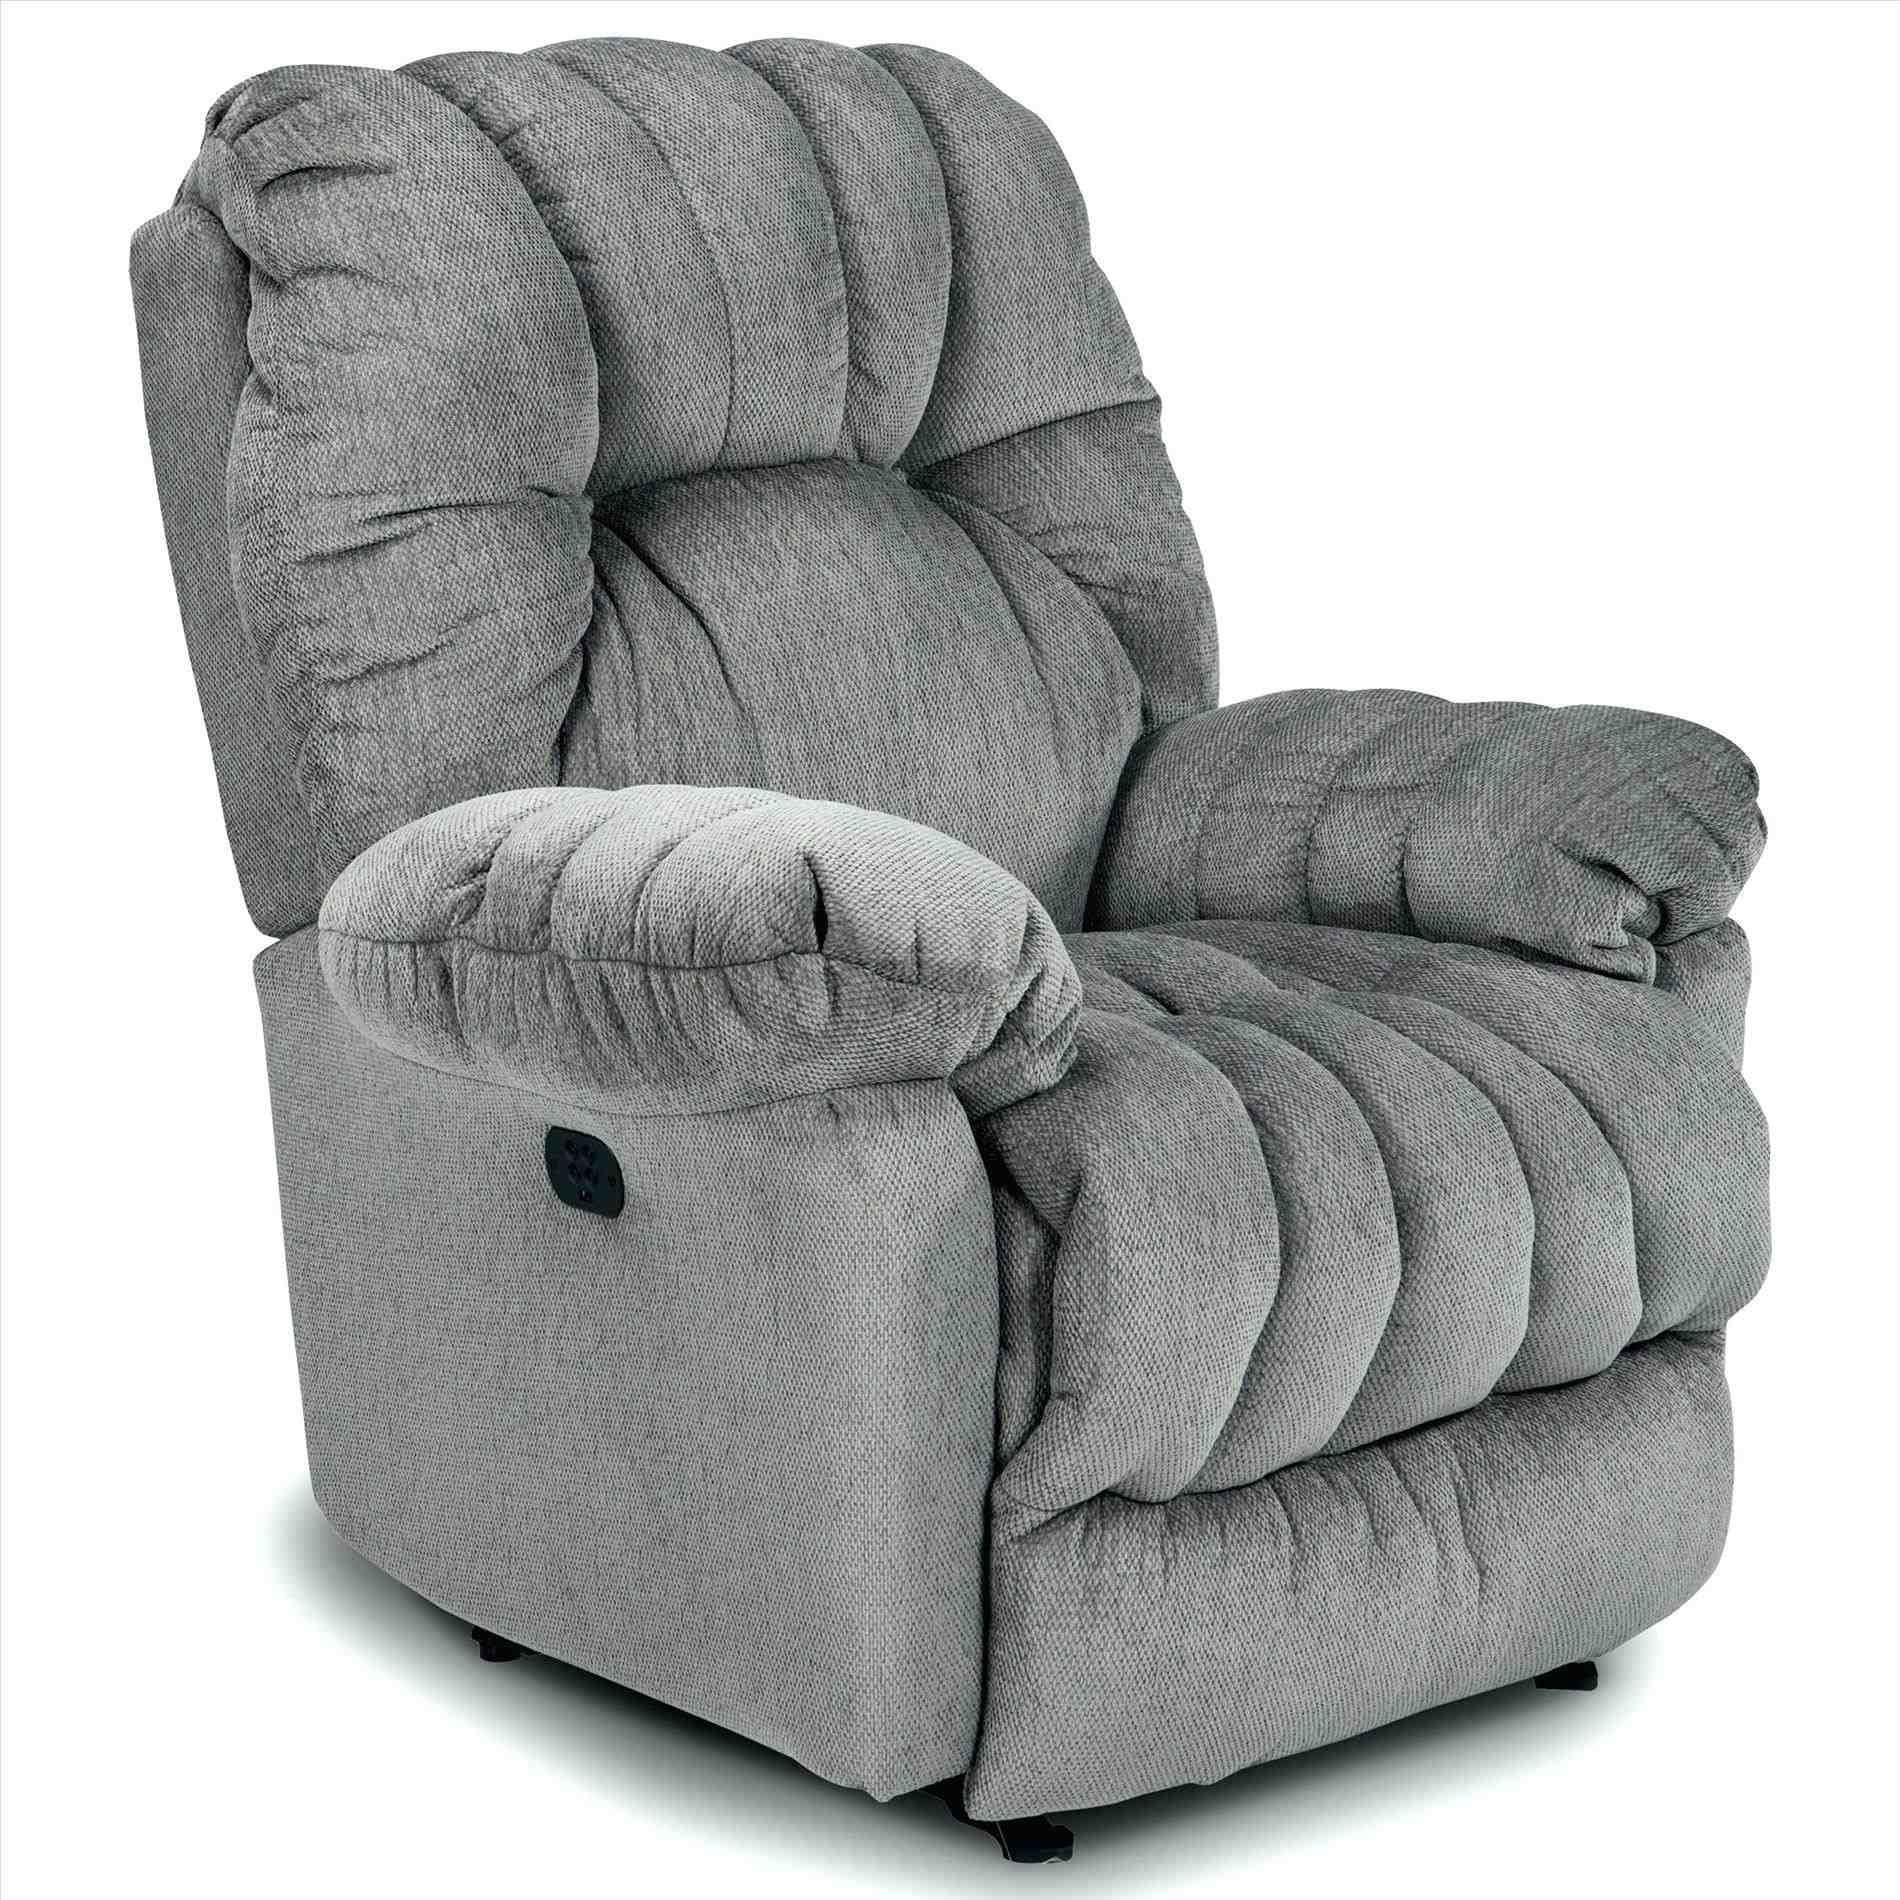 Cheap Recliner Chairs Cheap Armchairs Cheap Sofas Ikea Cheap Recliner Chairs Under 100 Uk Full Size Of Cha Accent Chairs For Sale Cheap Accent Chairs Chair